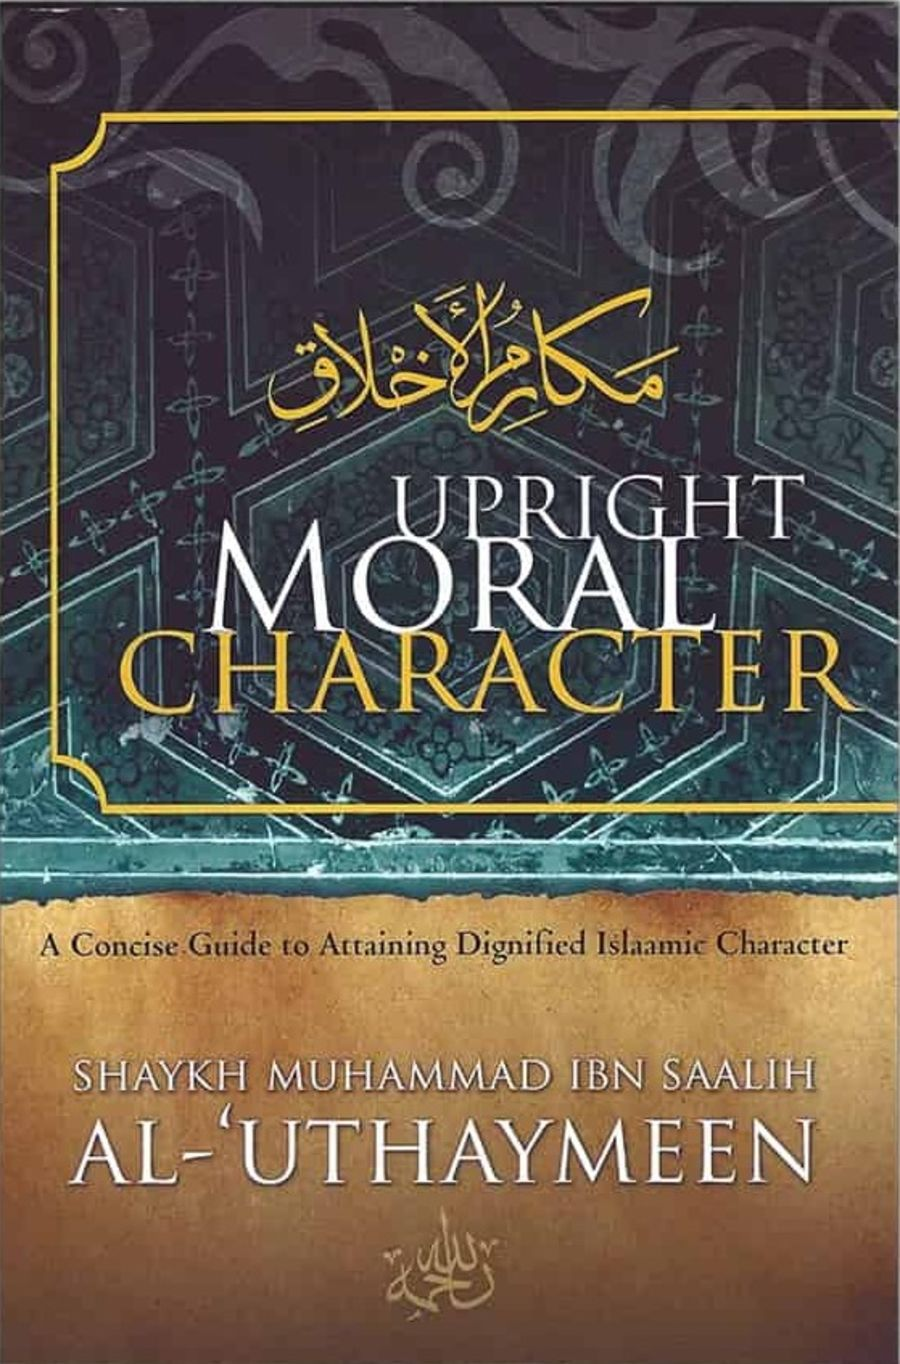 Upright Moral Character by Shaykh Uthaymeen